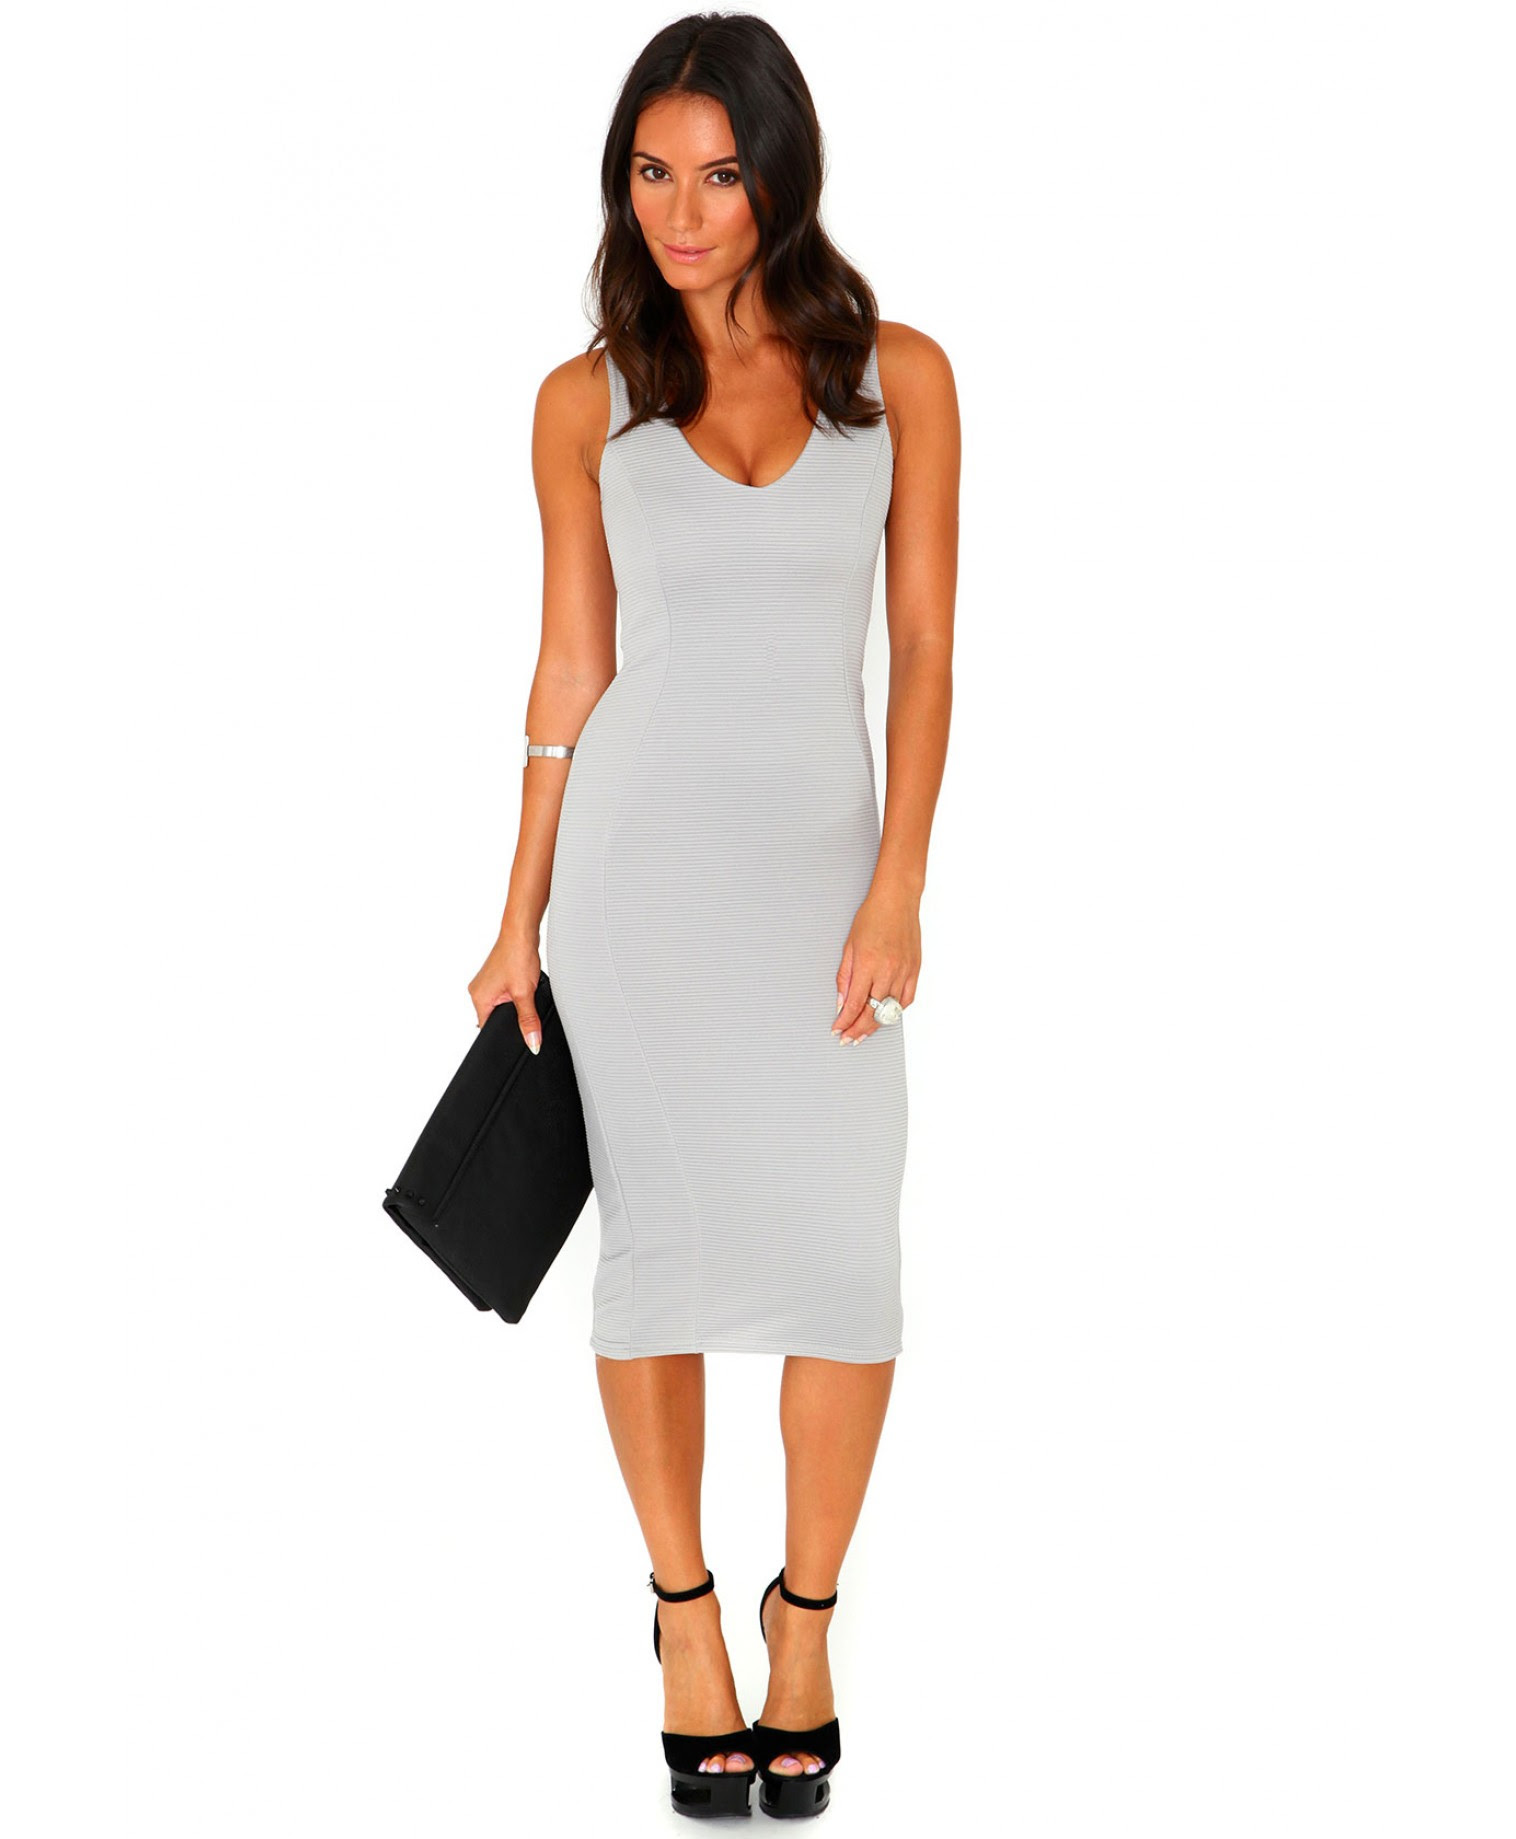 Is game bodycon up what dress a out mystery box